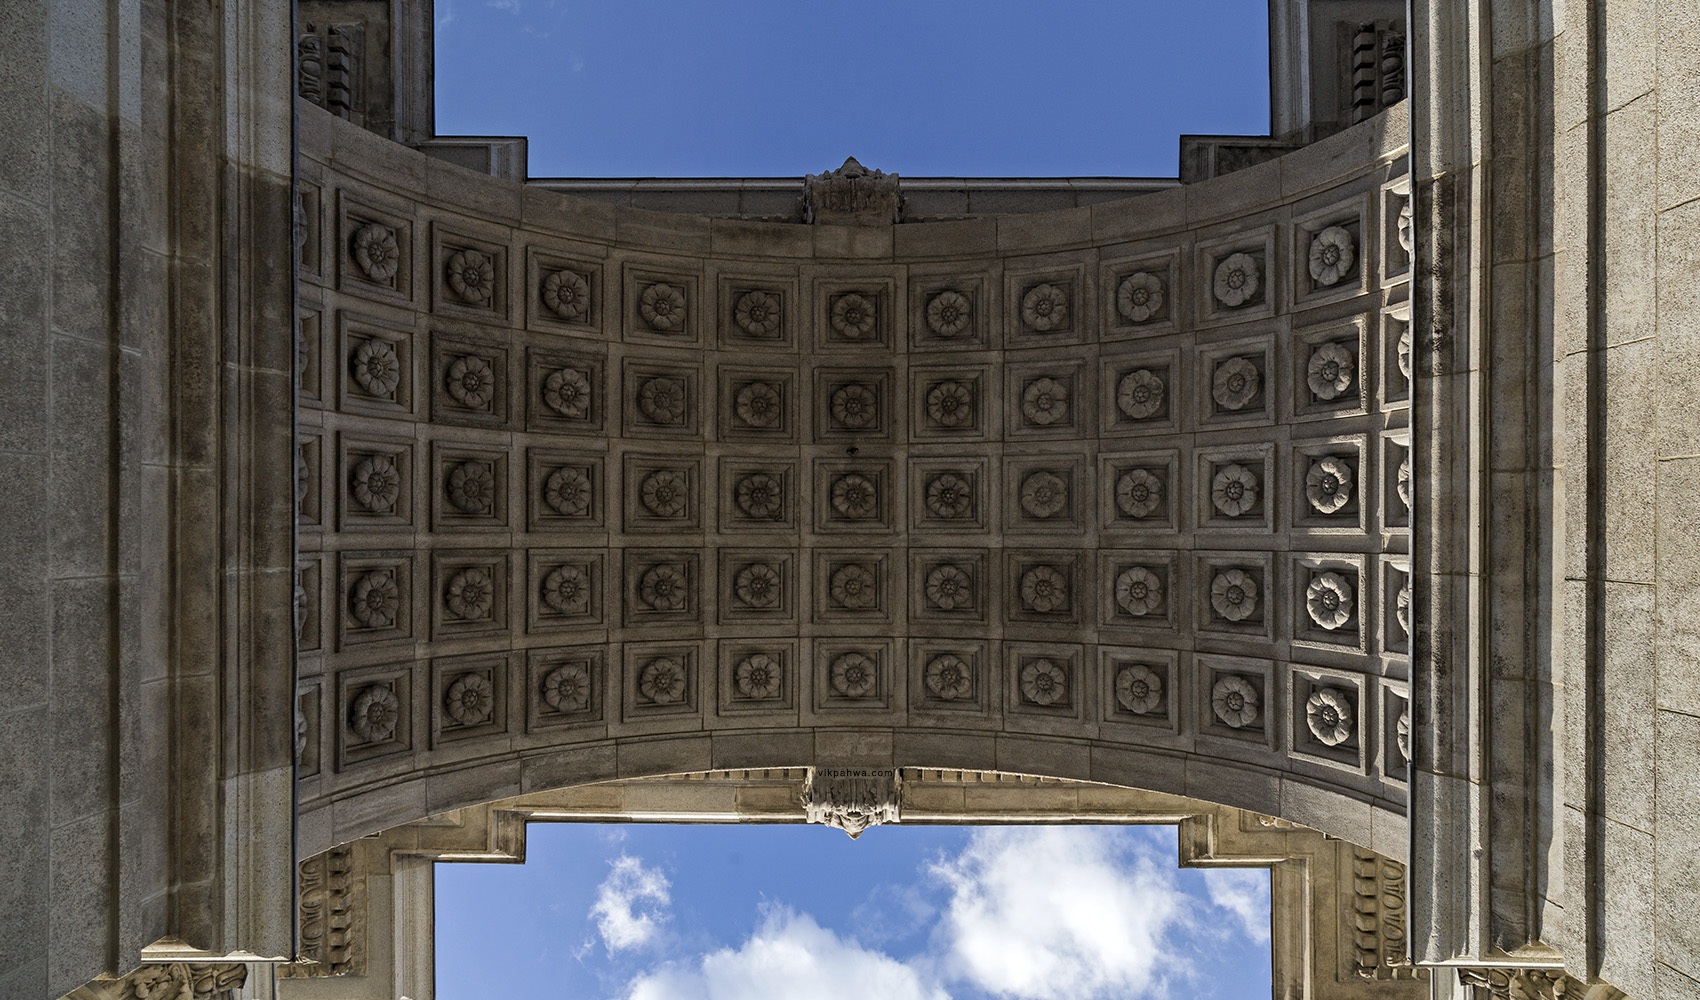 20170304. Up underneath the Princes' Gates celebrating 60 years